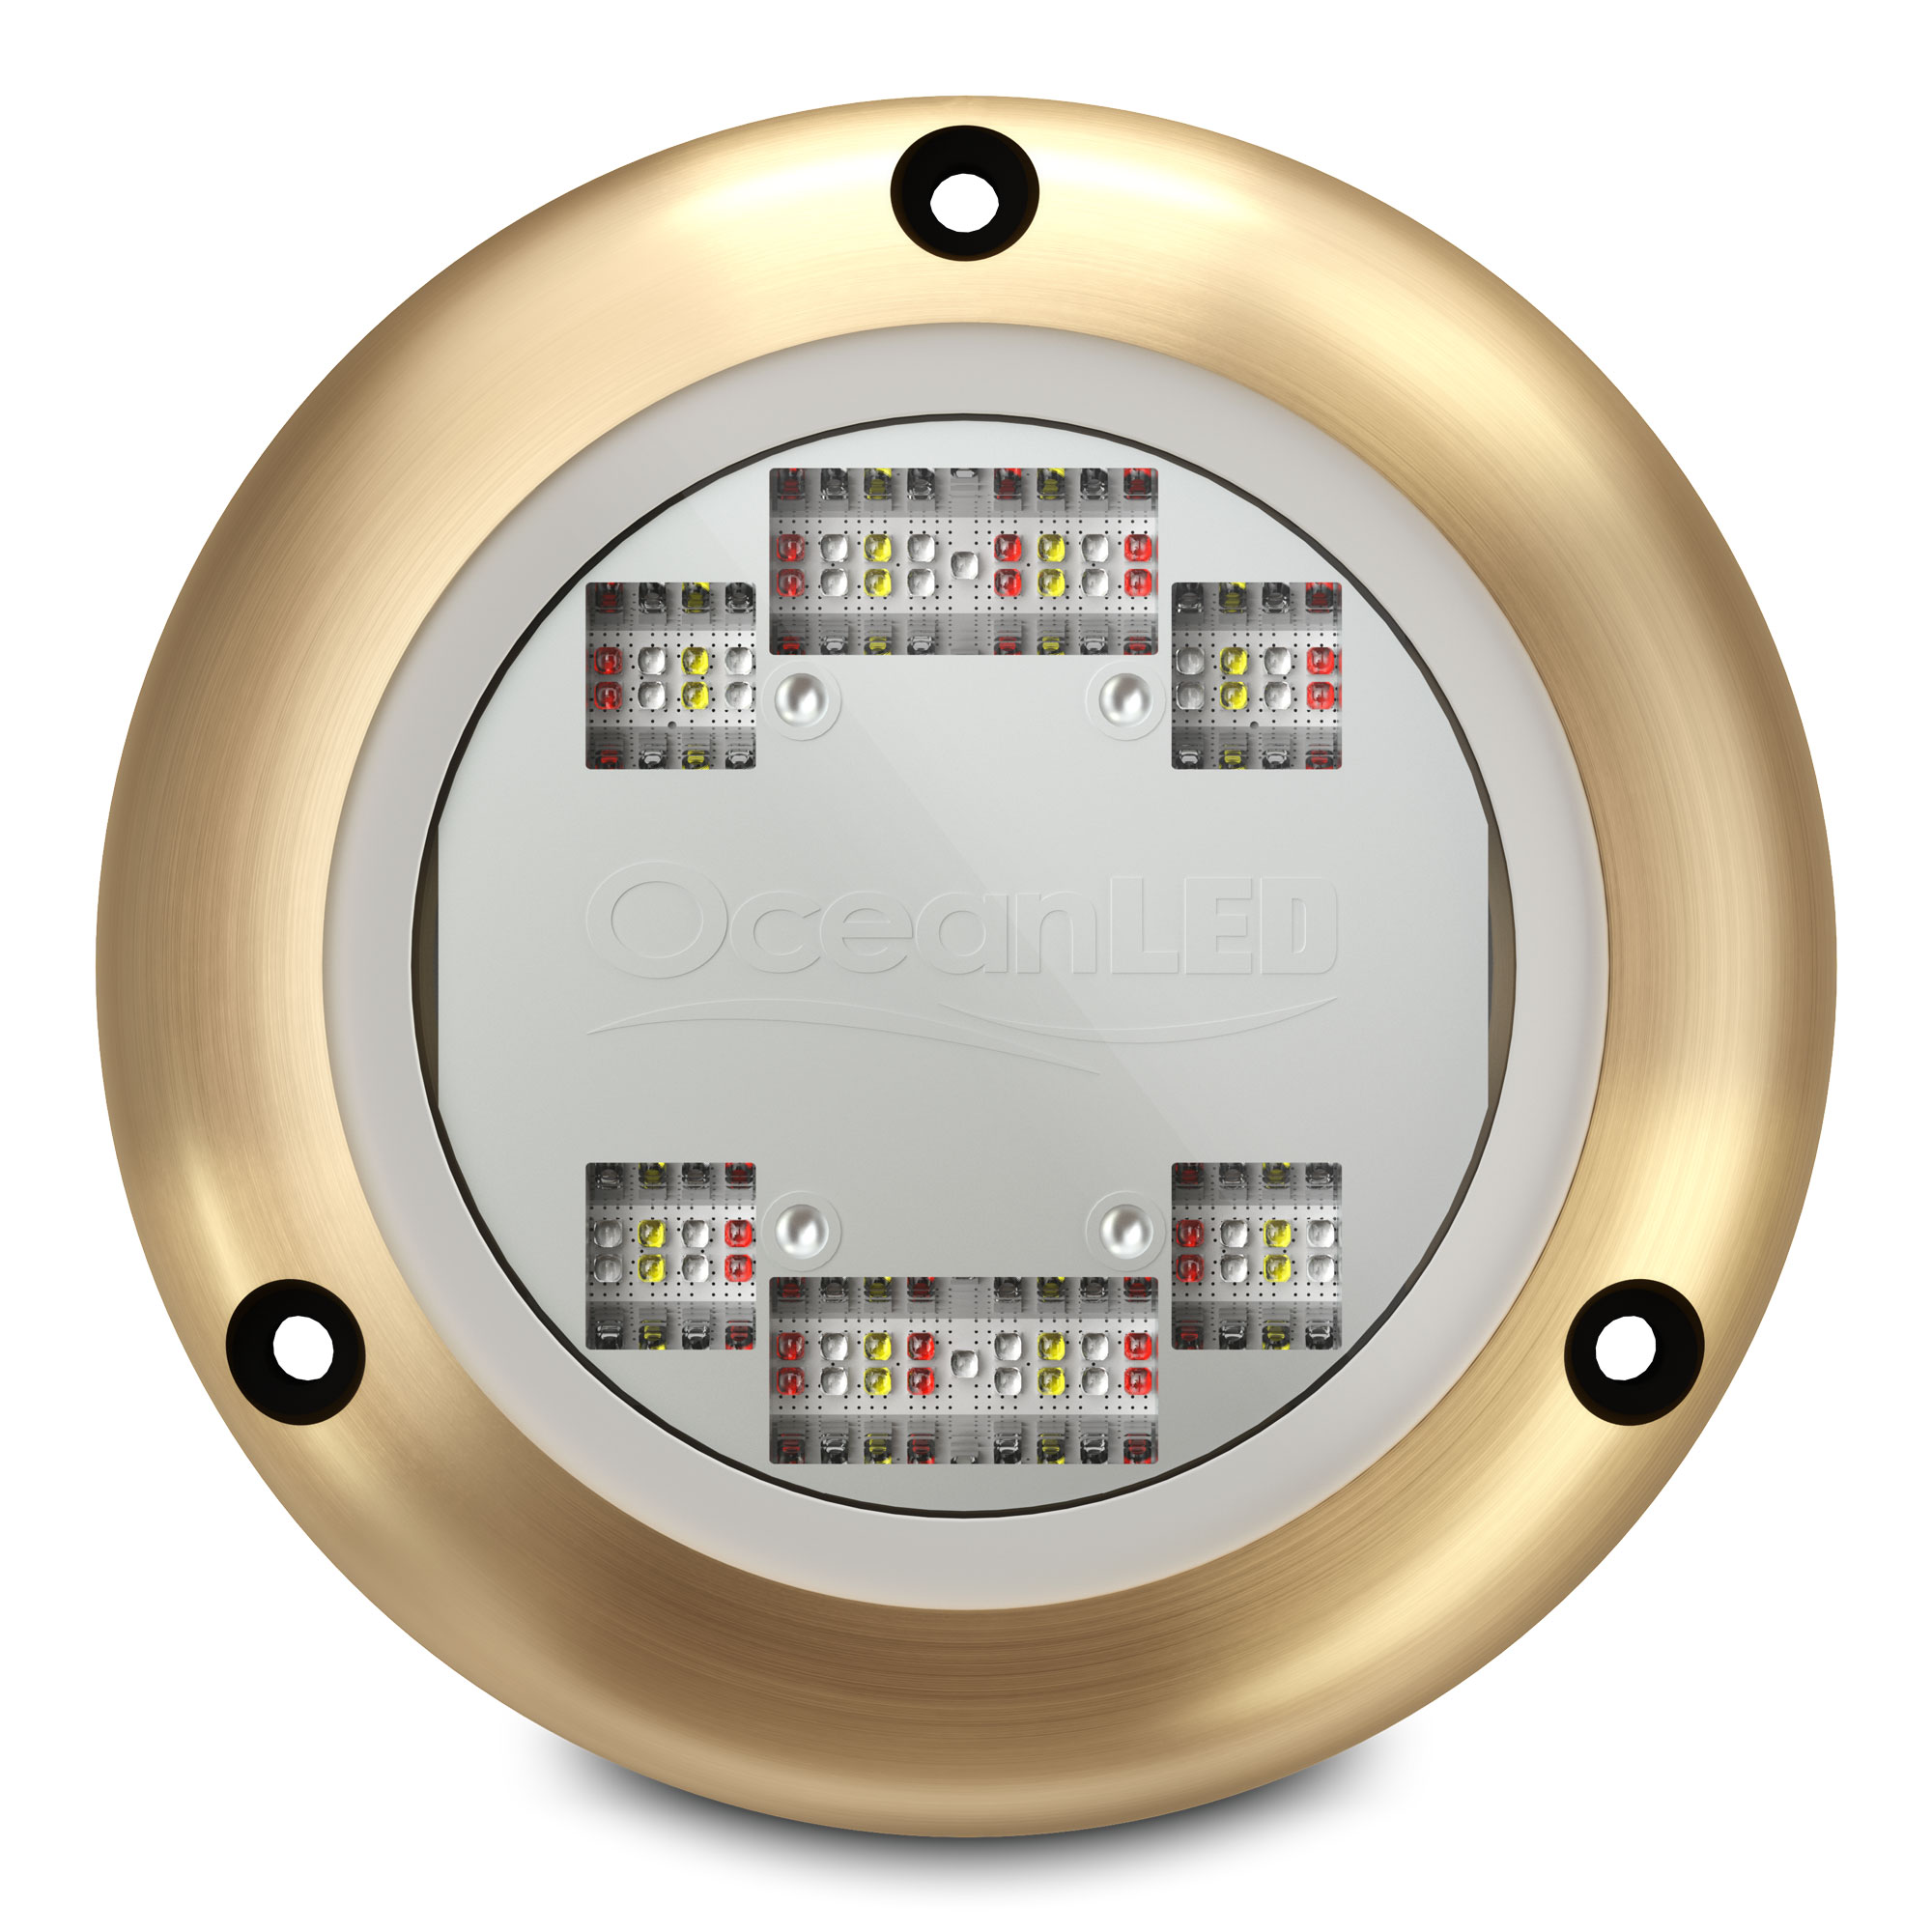 Oceanled Sport S3166S RGBW LED Underwater Light